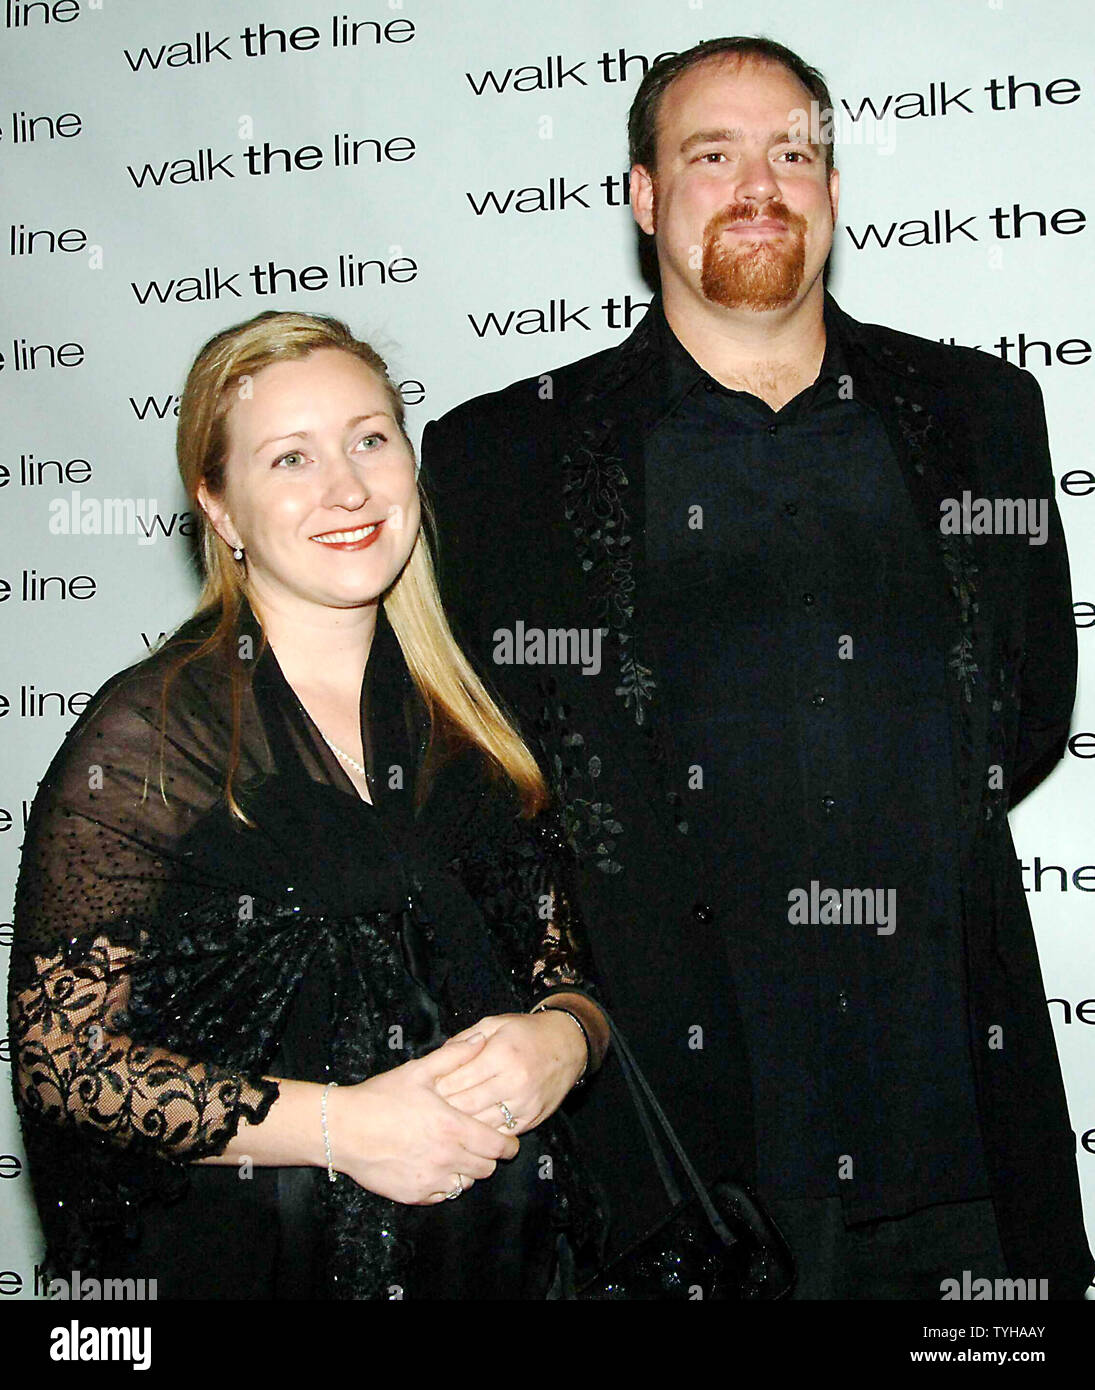 John Carter Cash Son Of Johnny Cash And His Wife Laura